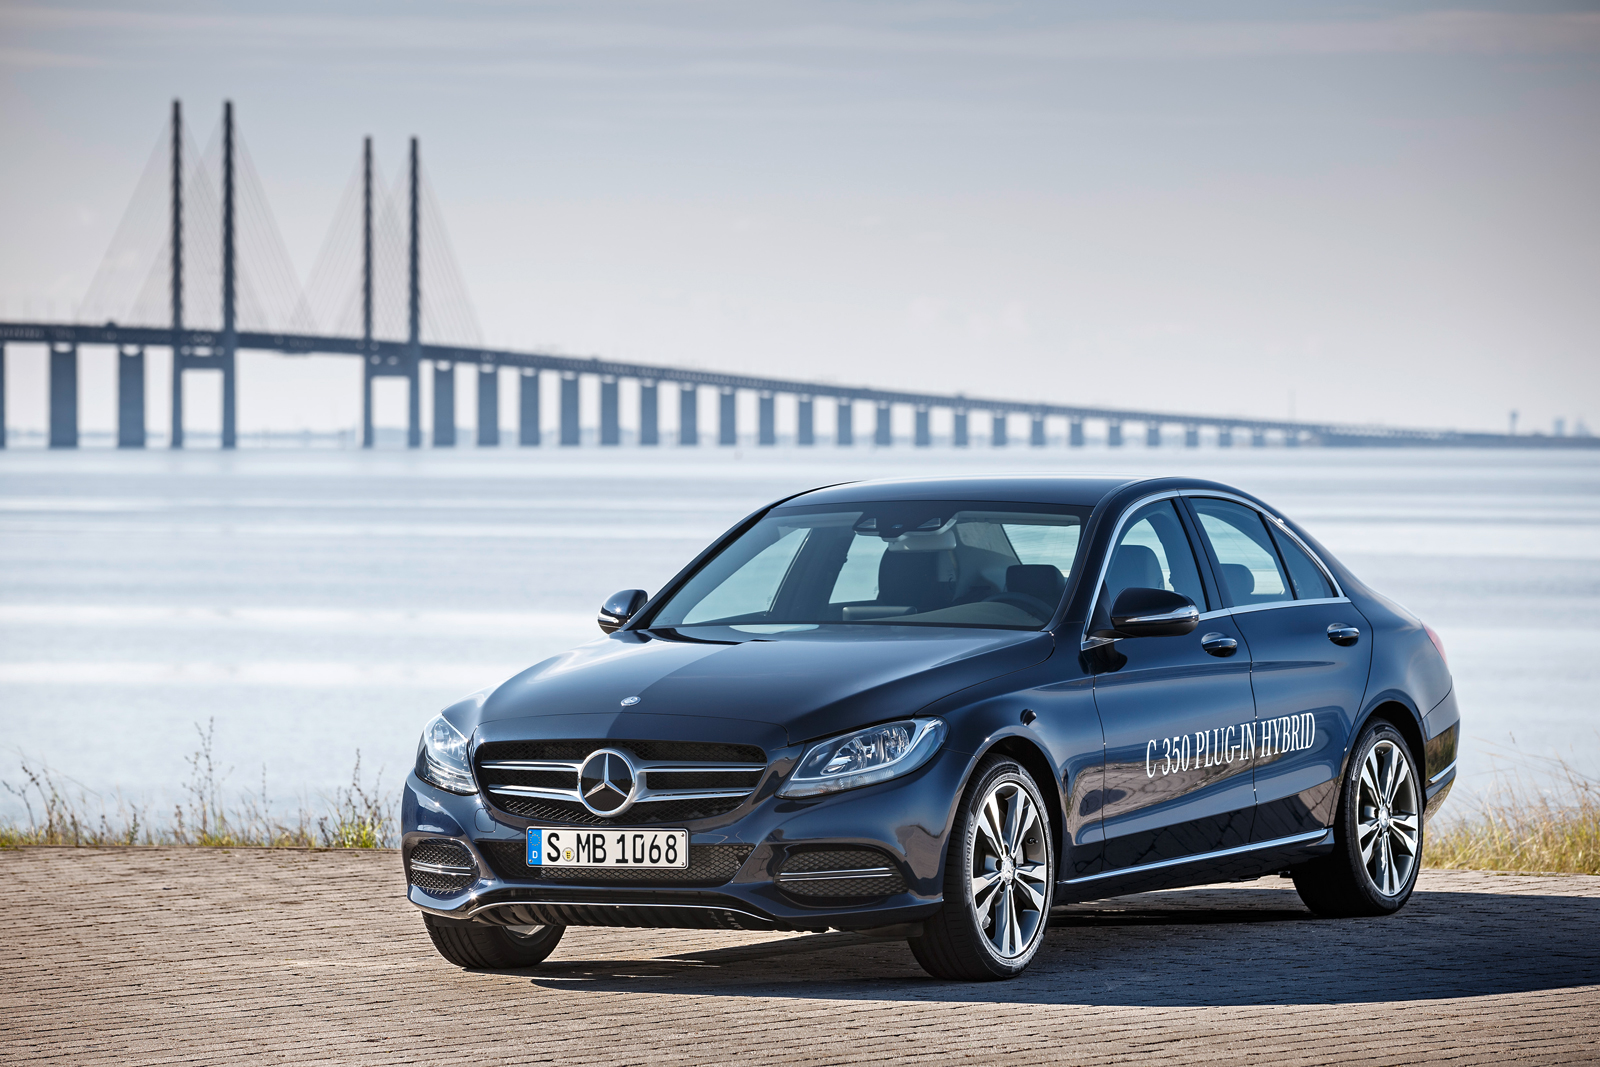 2016 mercedes c class adds diesel plug in hybrid models for Average insurance cost for mercedes benz c300